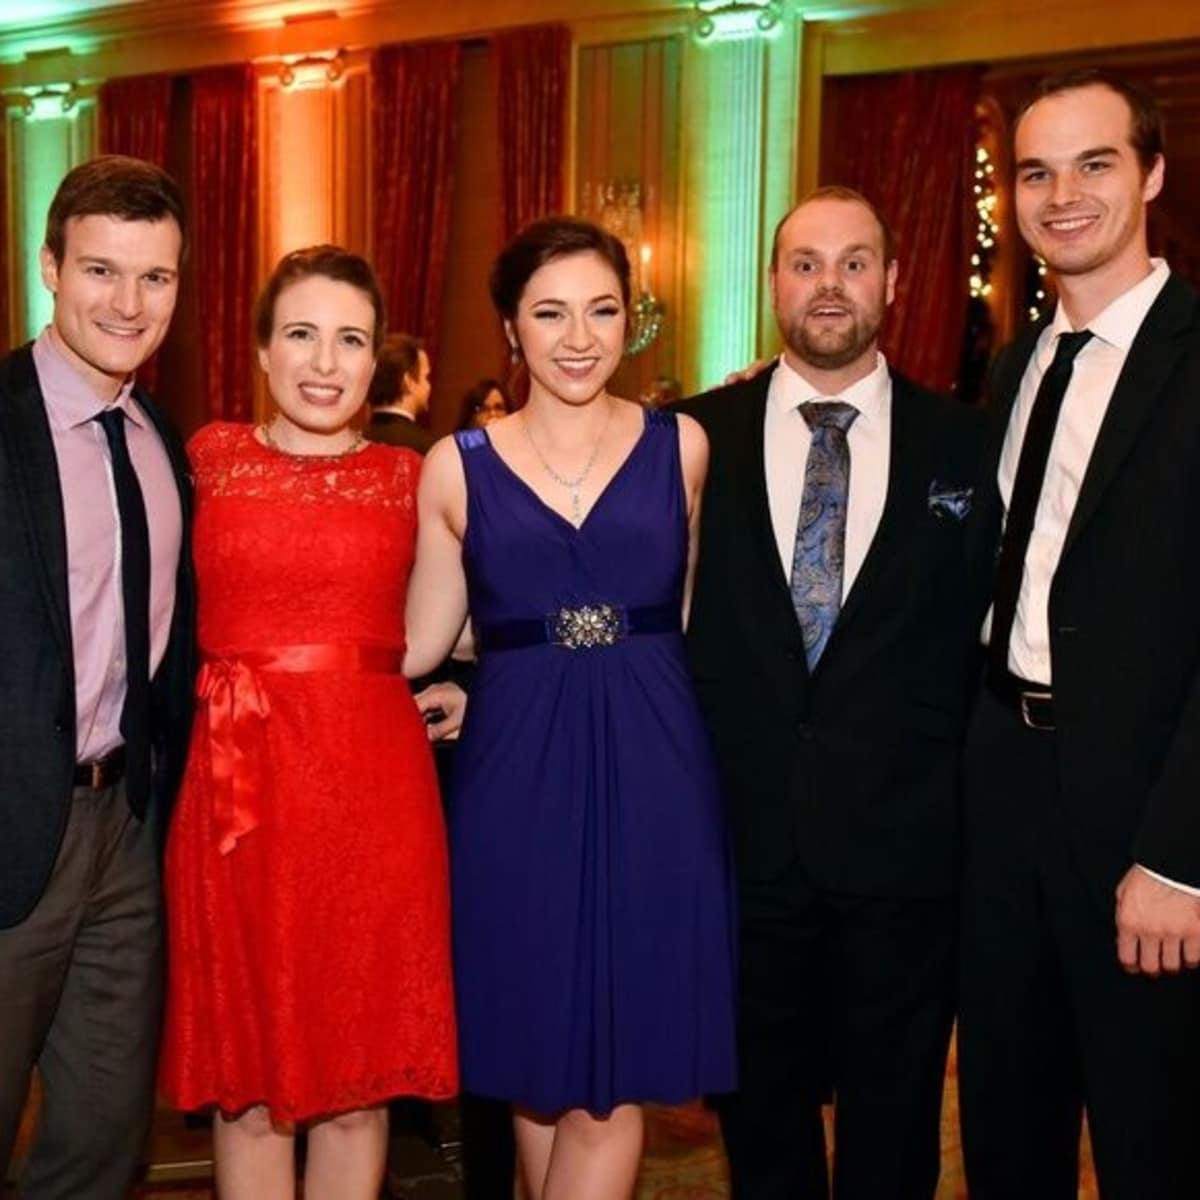 Jonathan Blalock, Bronwyn White, Bridget Cappel, Josh Friend, Sam Filson Parkinson, FW Opera, Dinner with the Stars